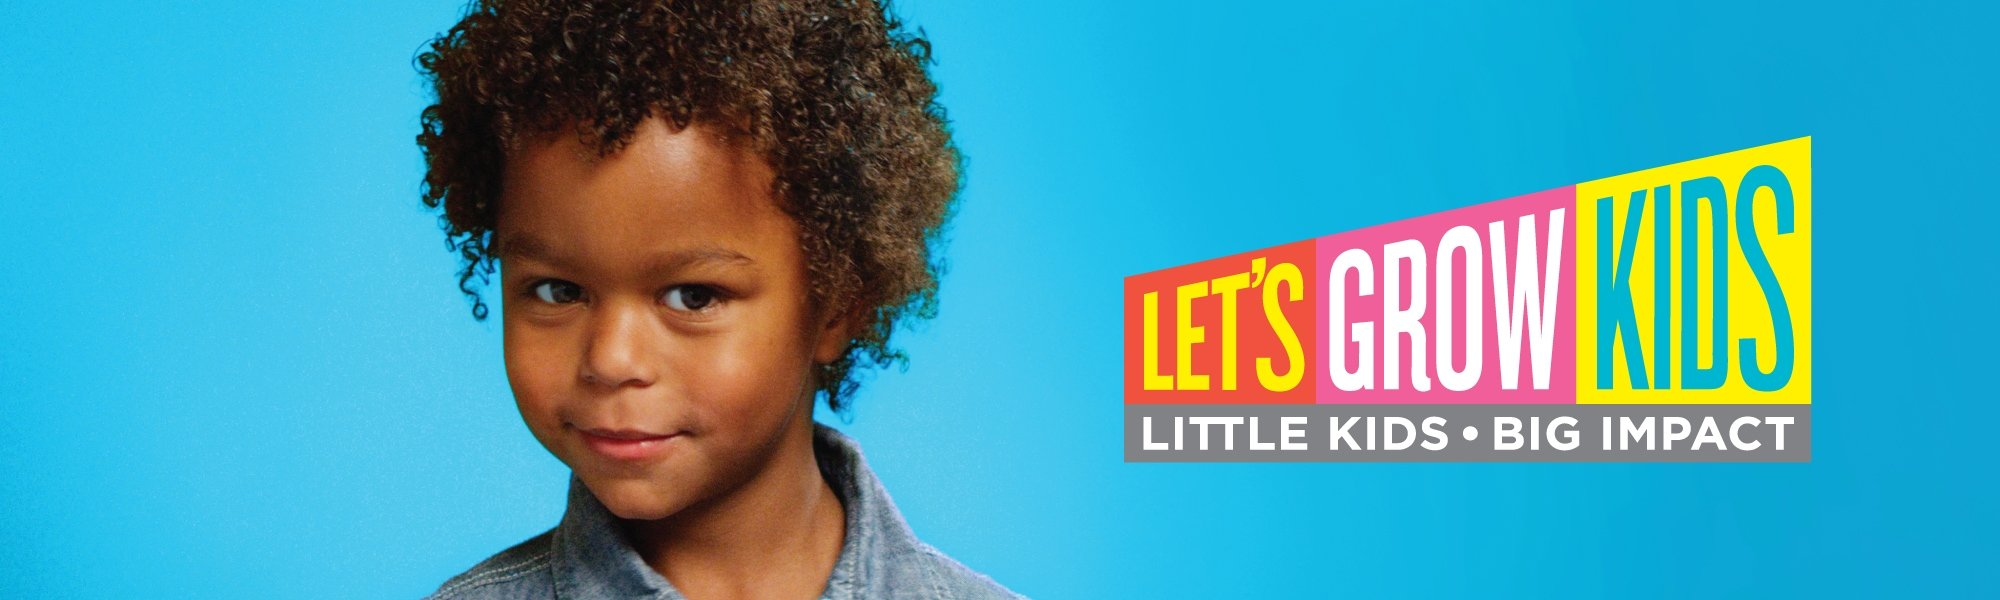 Let's Grow Kids Campaign Header